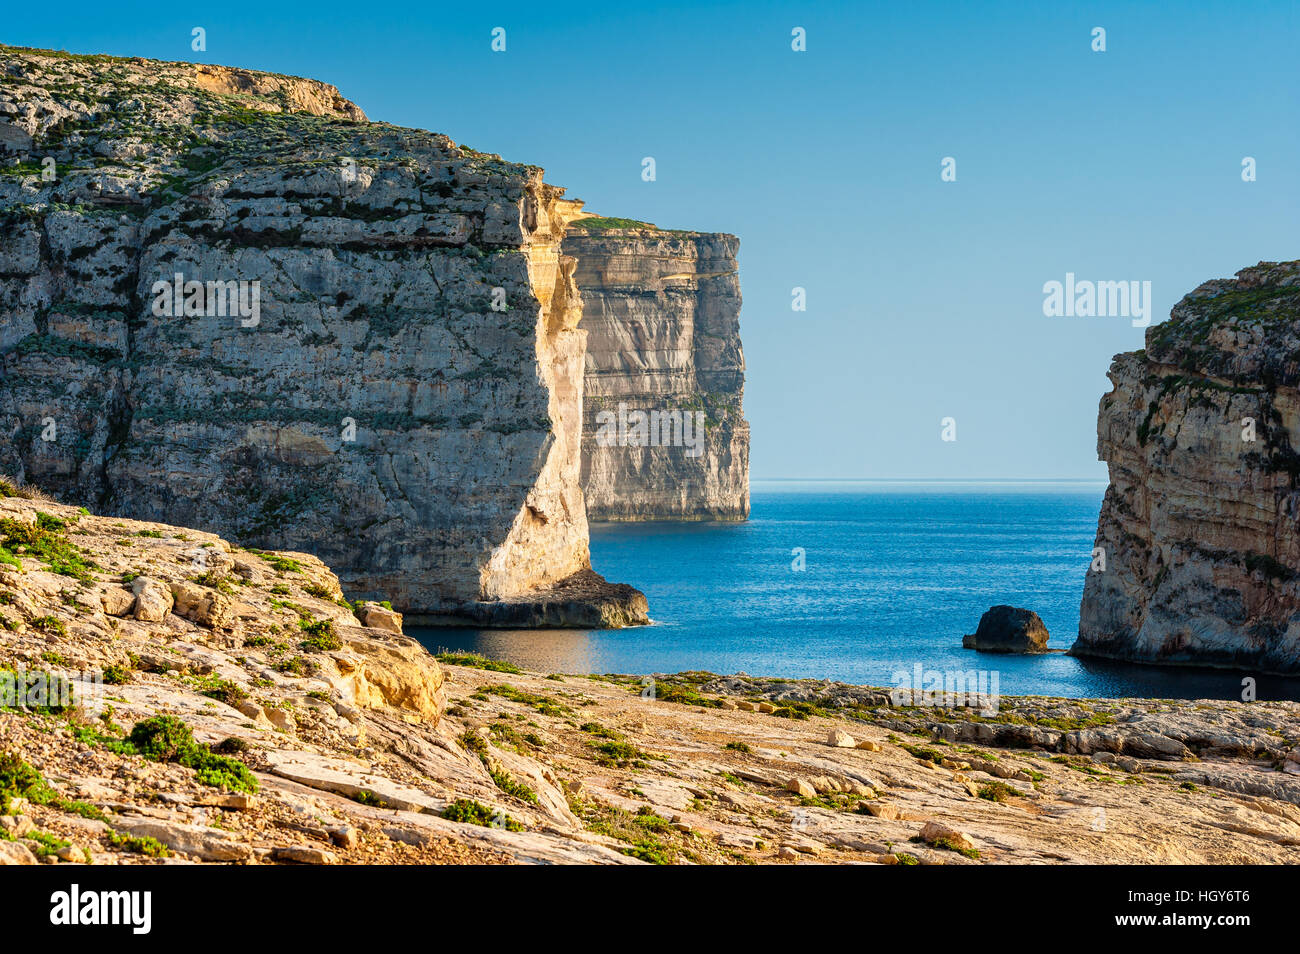 Cliffs on West Coast of Gozo Malta - Stock Image